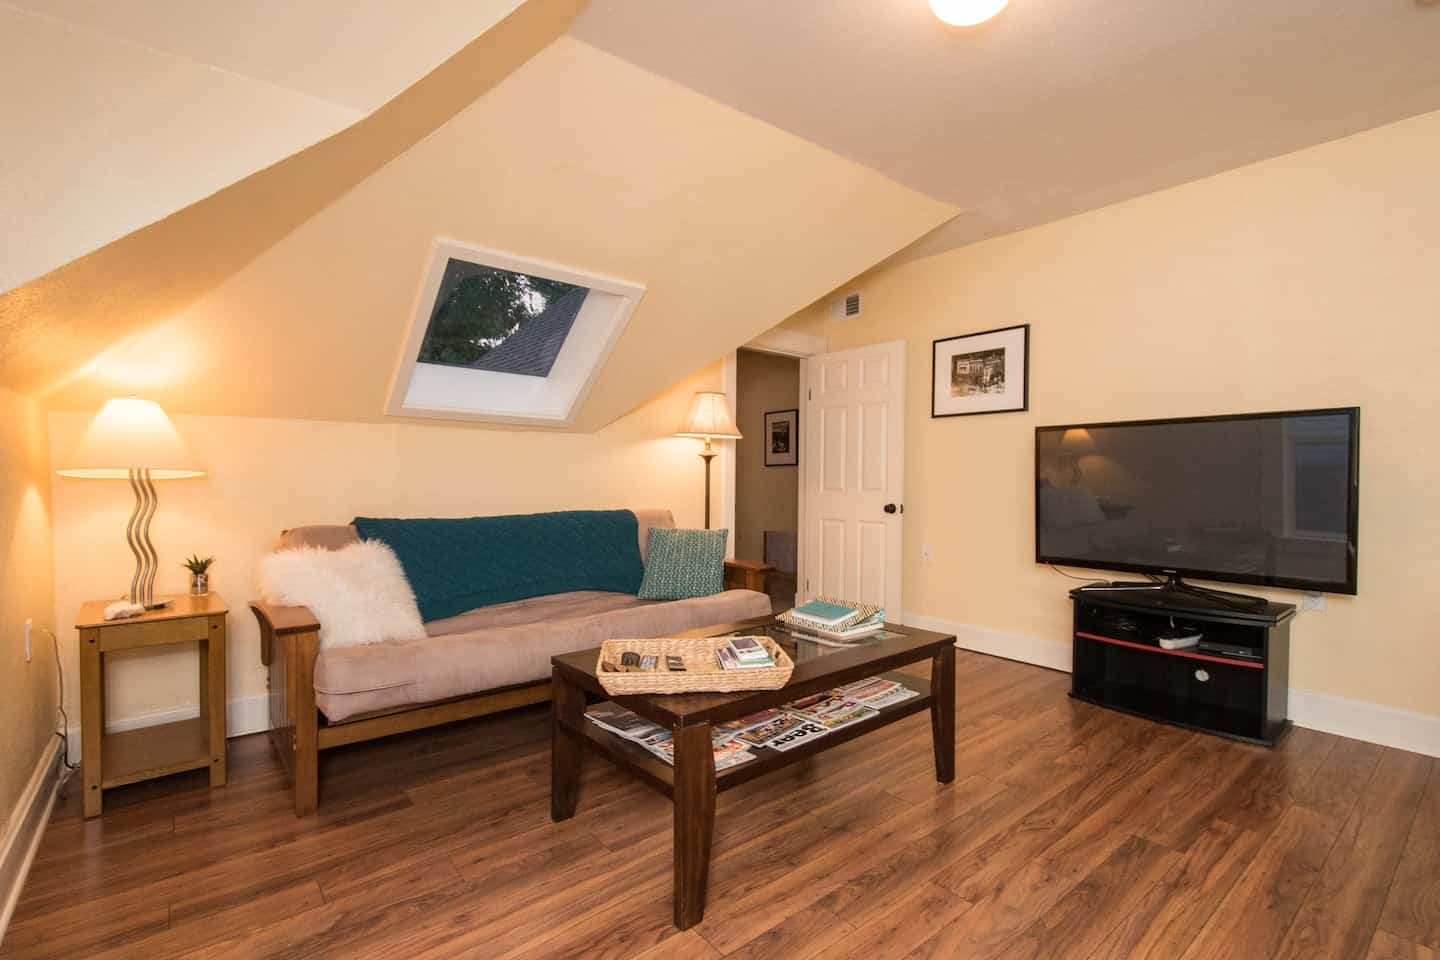 Image of Airbnb rental in Fort Collins, Colorado